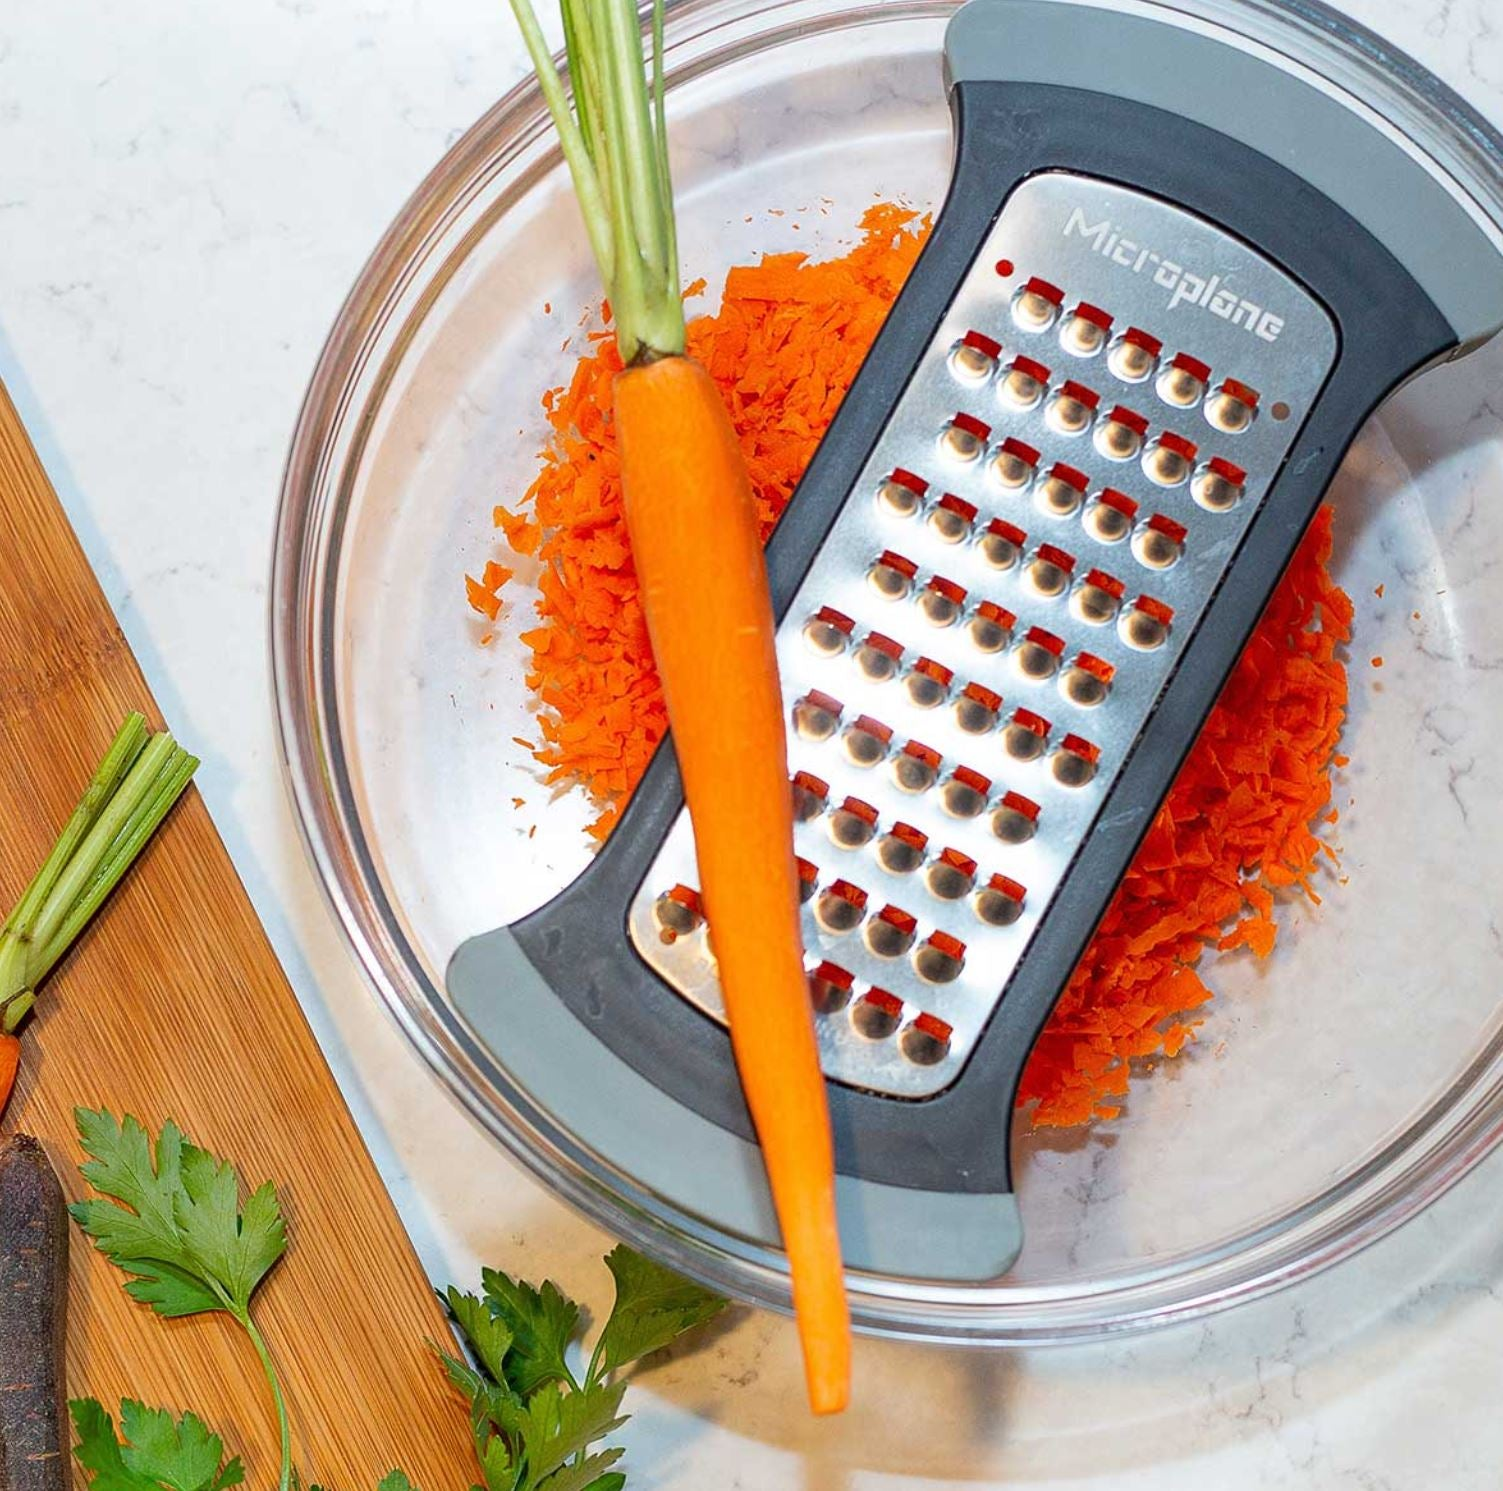 Microplane Bowl Grater